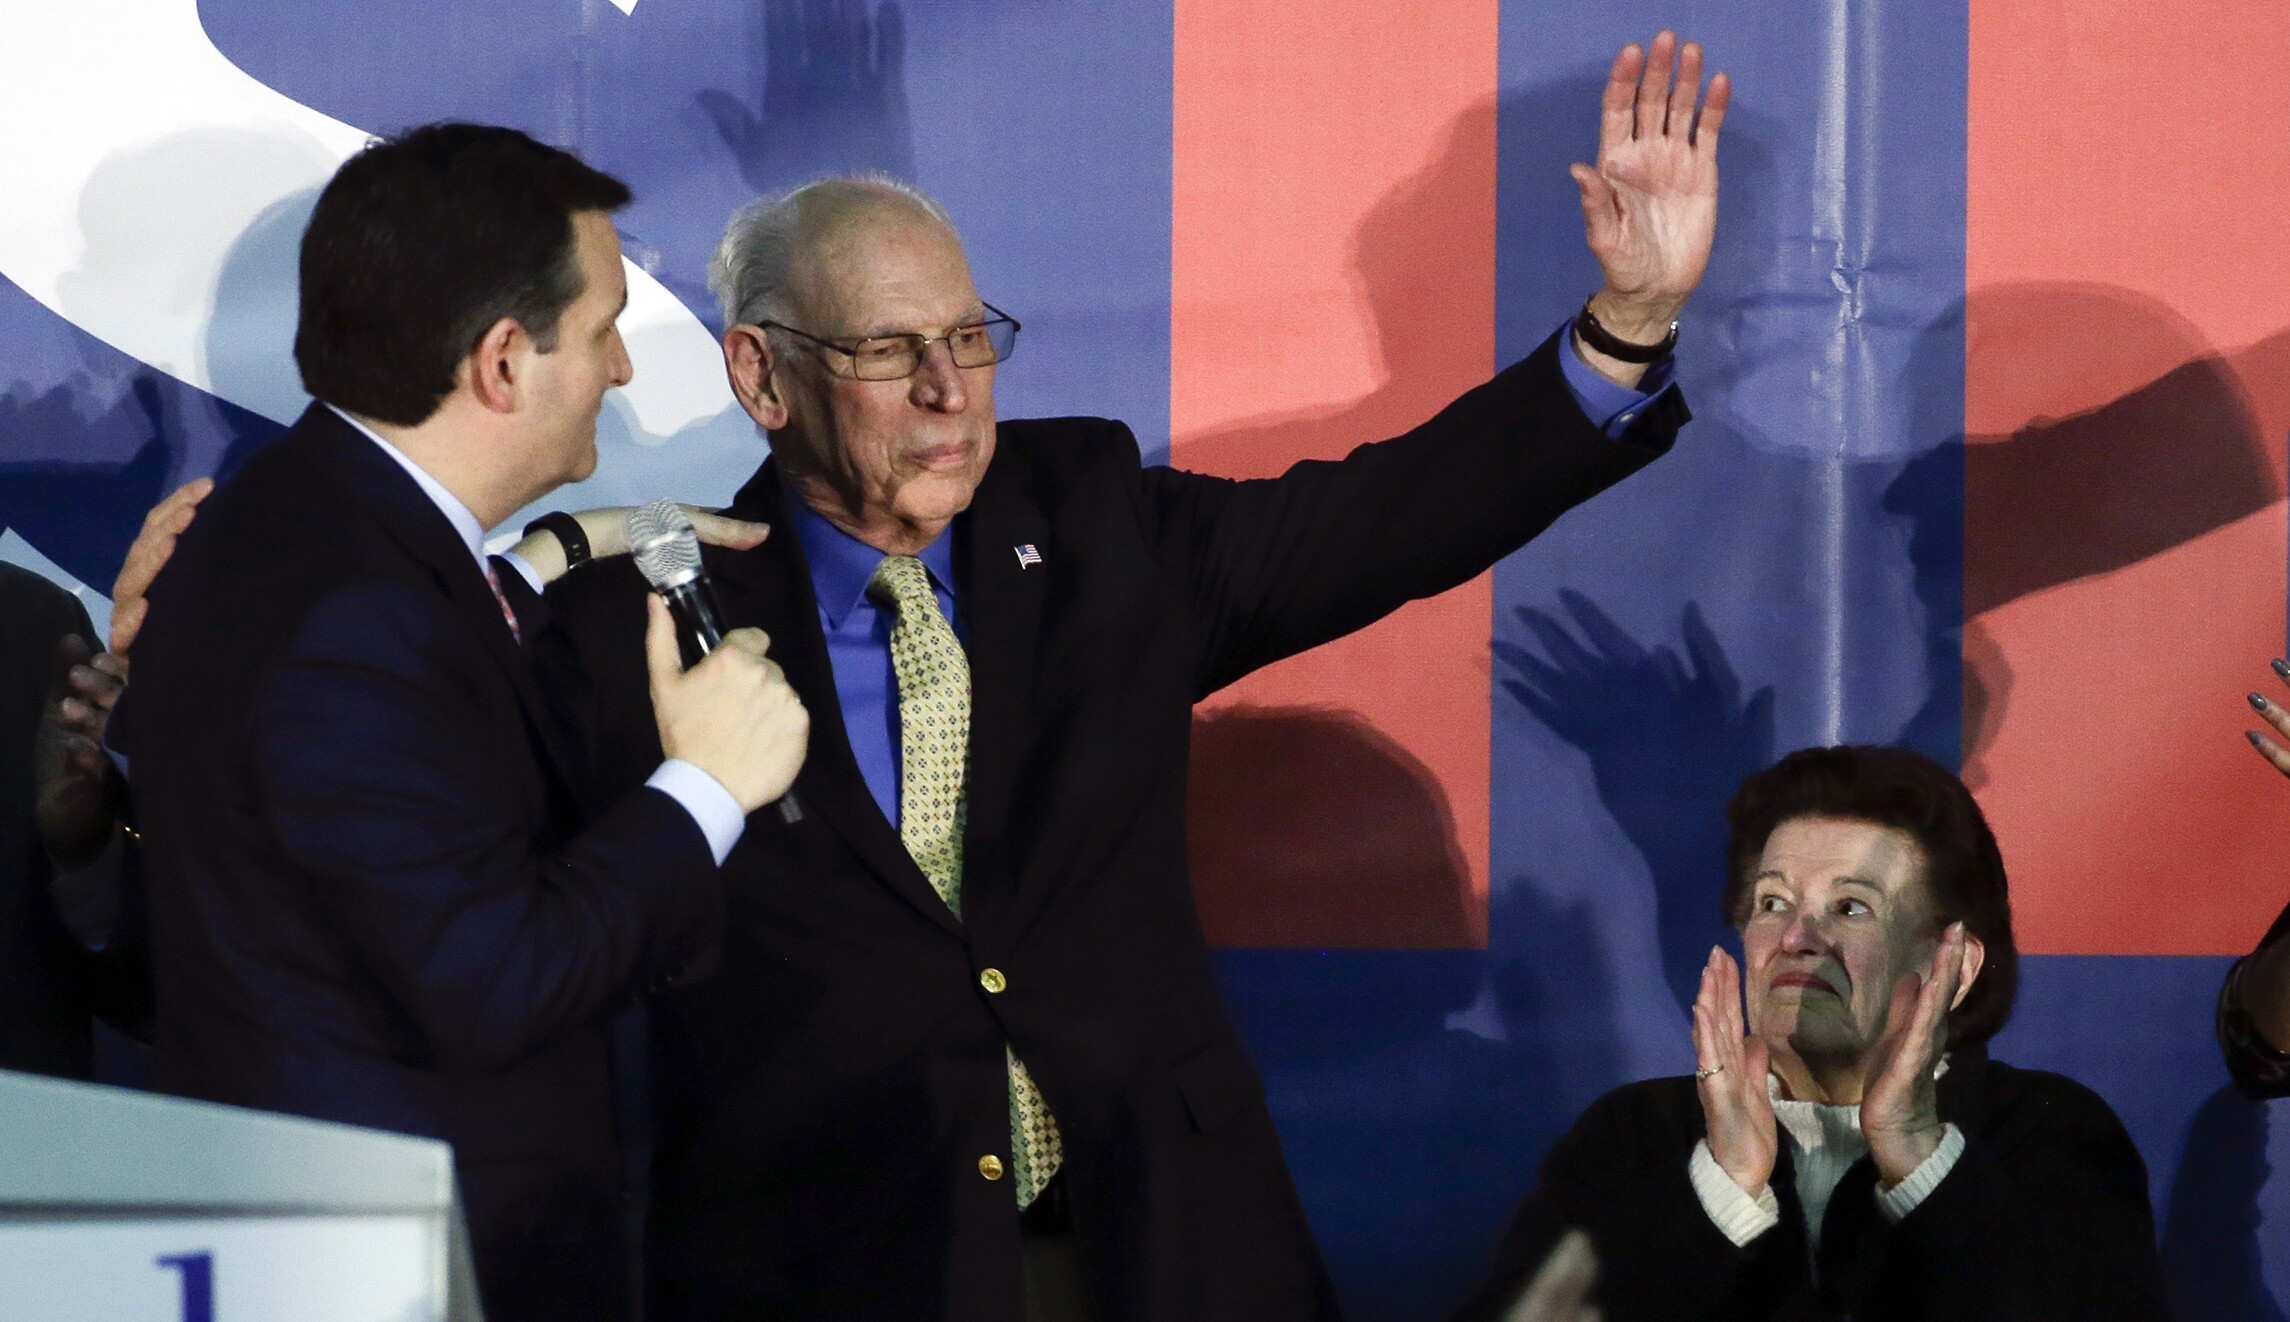 Ted Cruz's father to be 'exposed?': Twitter jokes impending